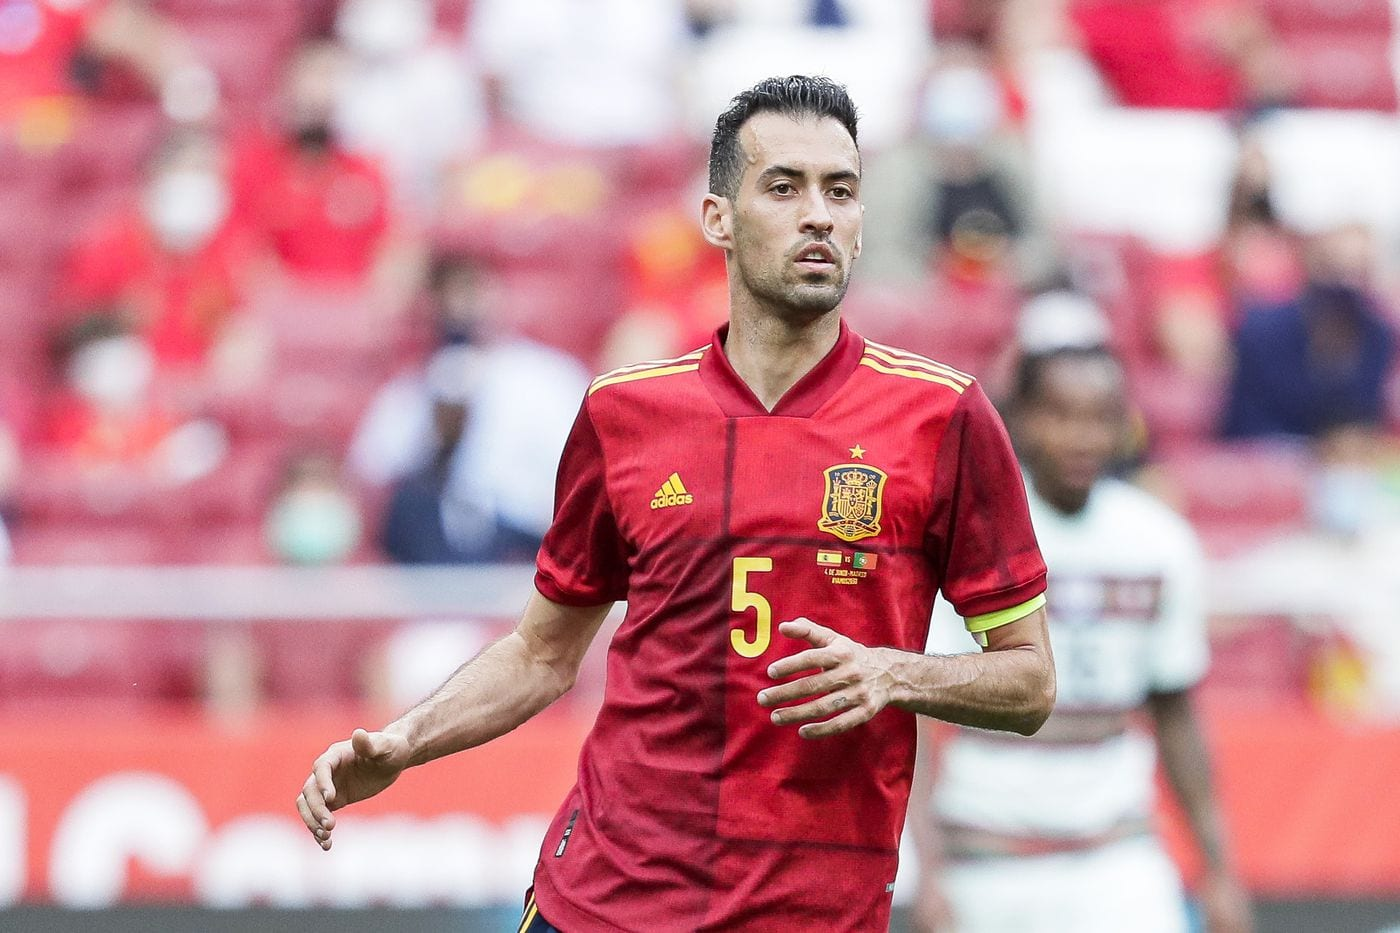 Sergio Busquets Net Worth: How Much Does The Spanish Footballer Earn?